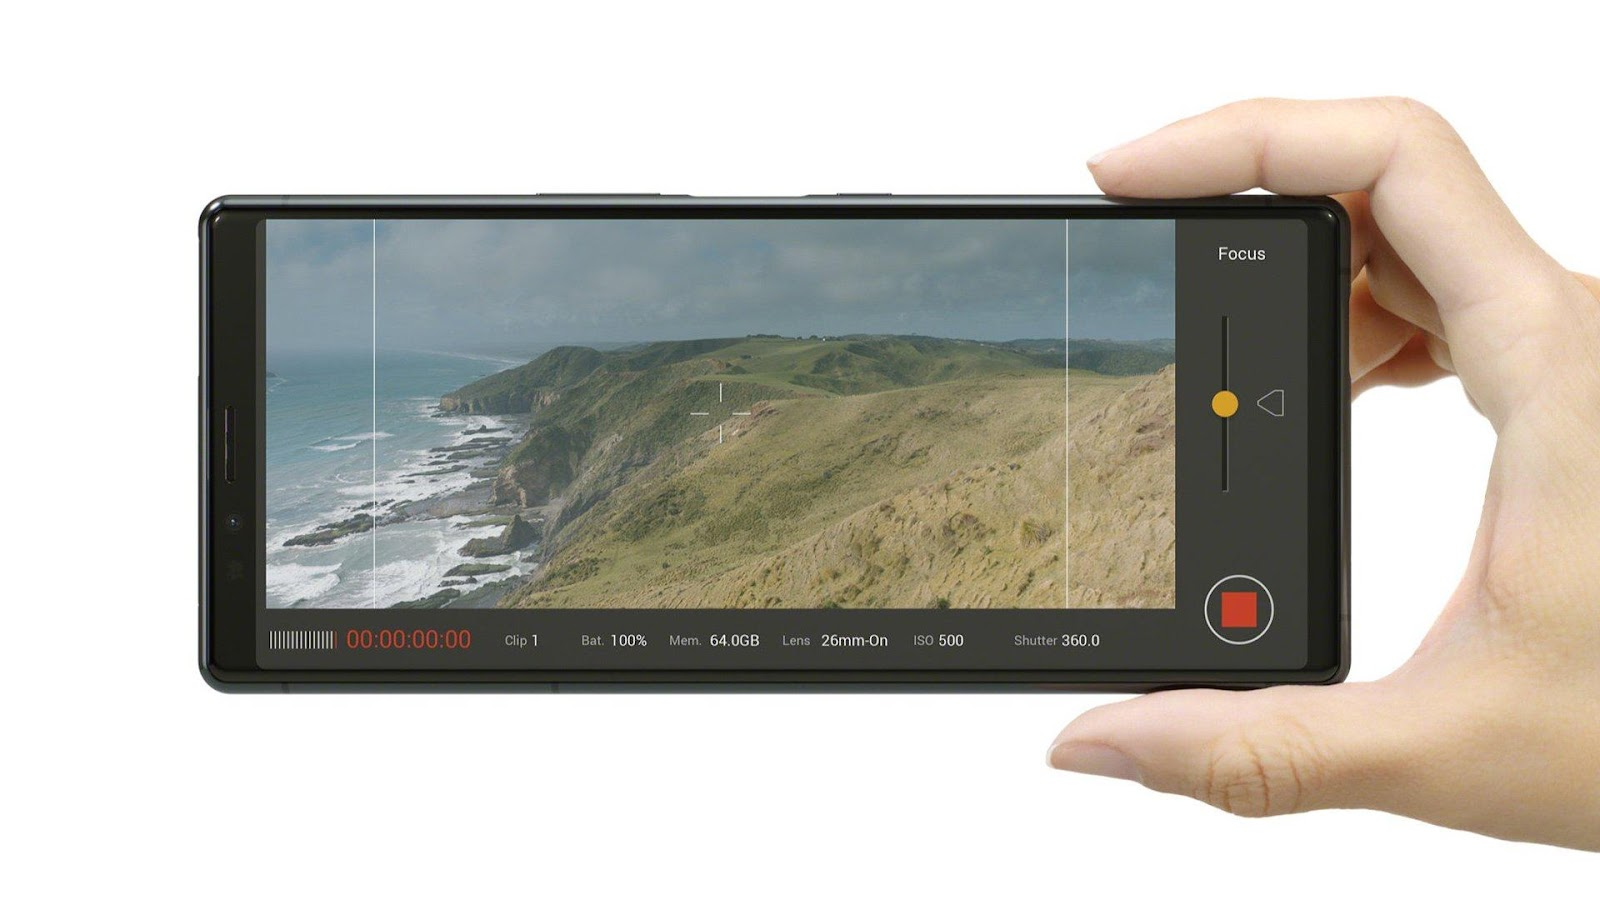 Forget folding displays, 5G video streaming and cameras are the ...